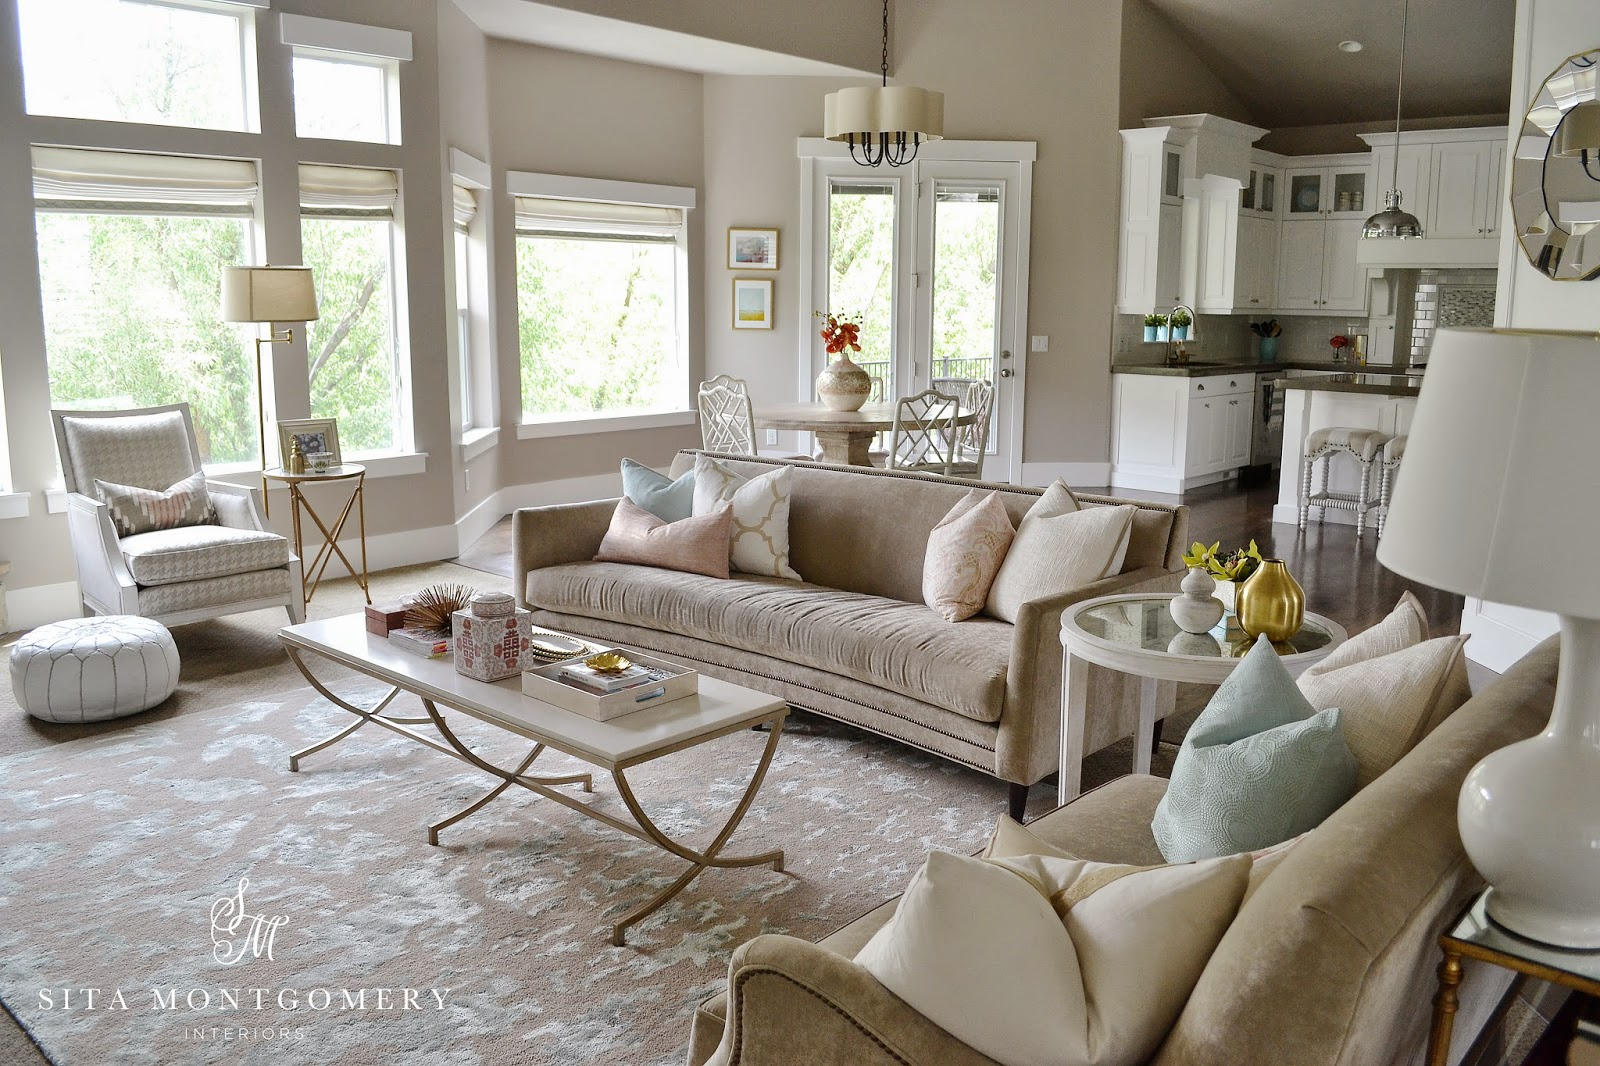 Sita Montgomery Interiors  My Home Family Room Mini Makeover Reveal     It didn t take much this time  and the changes are pretty subtle  but the  family room great room area finally has the feel and look I had always been  hoping